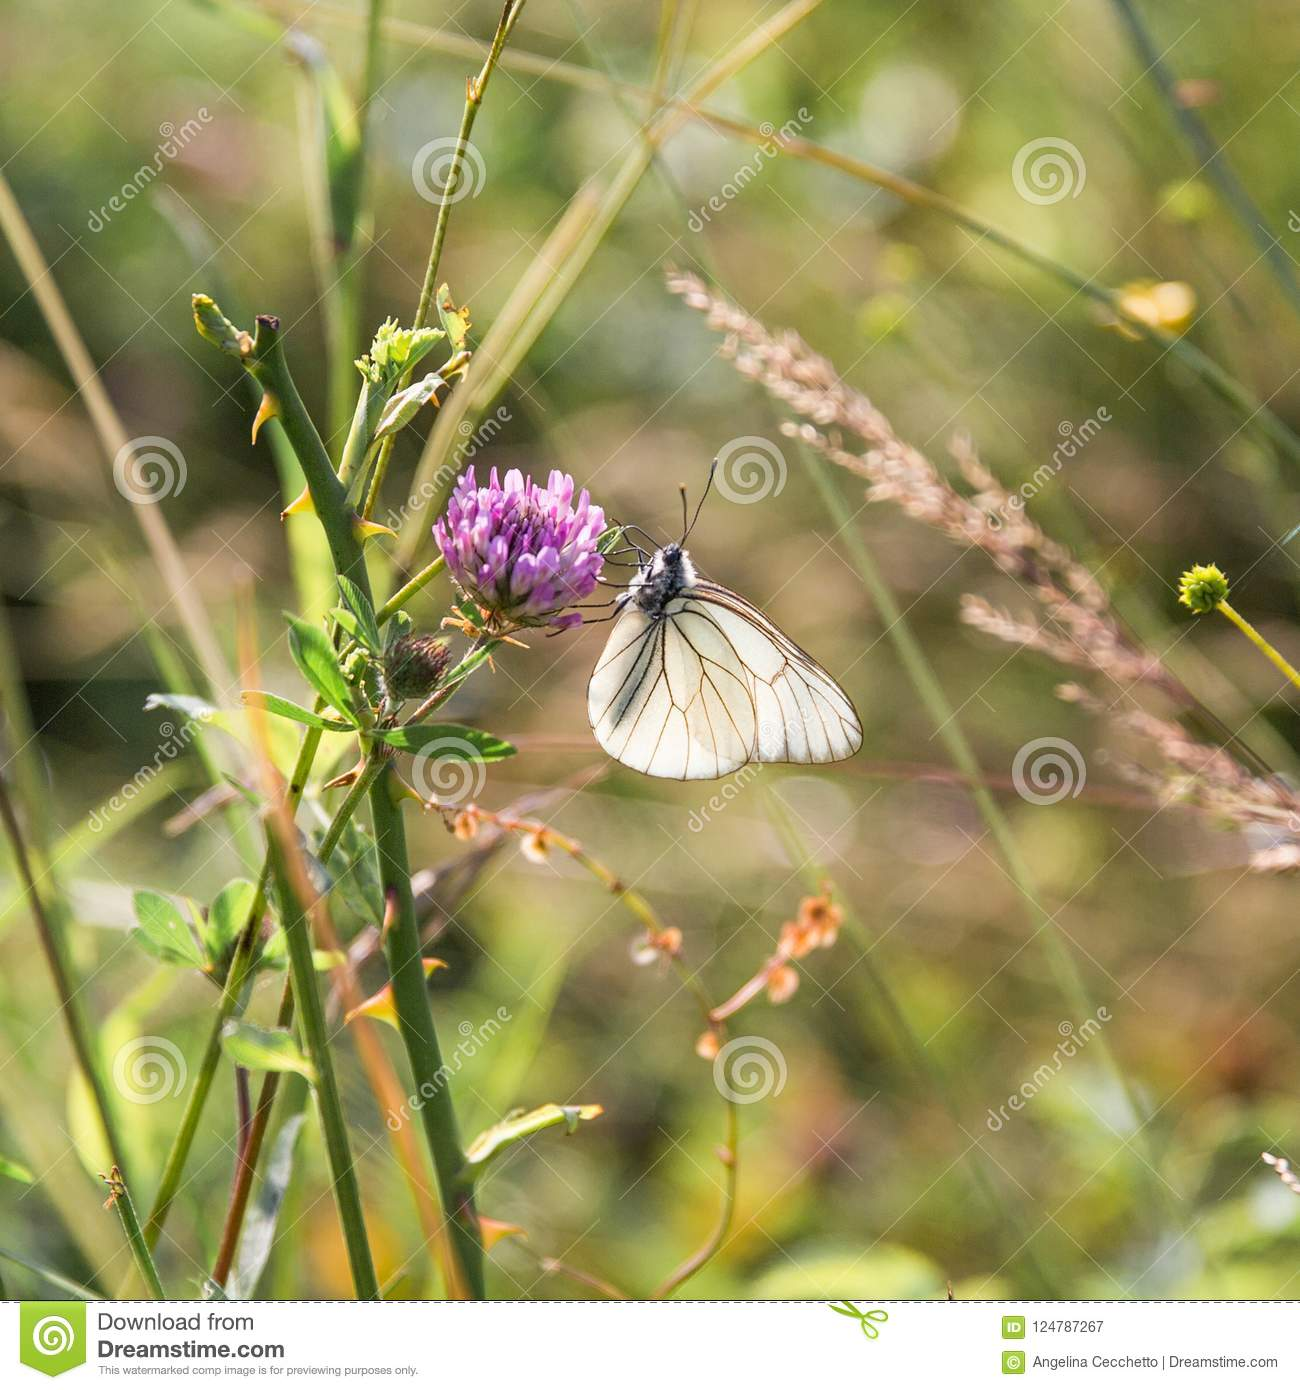 Black and White Butterfly Gathering Pollen on Lilac Flowers in G